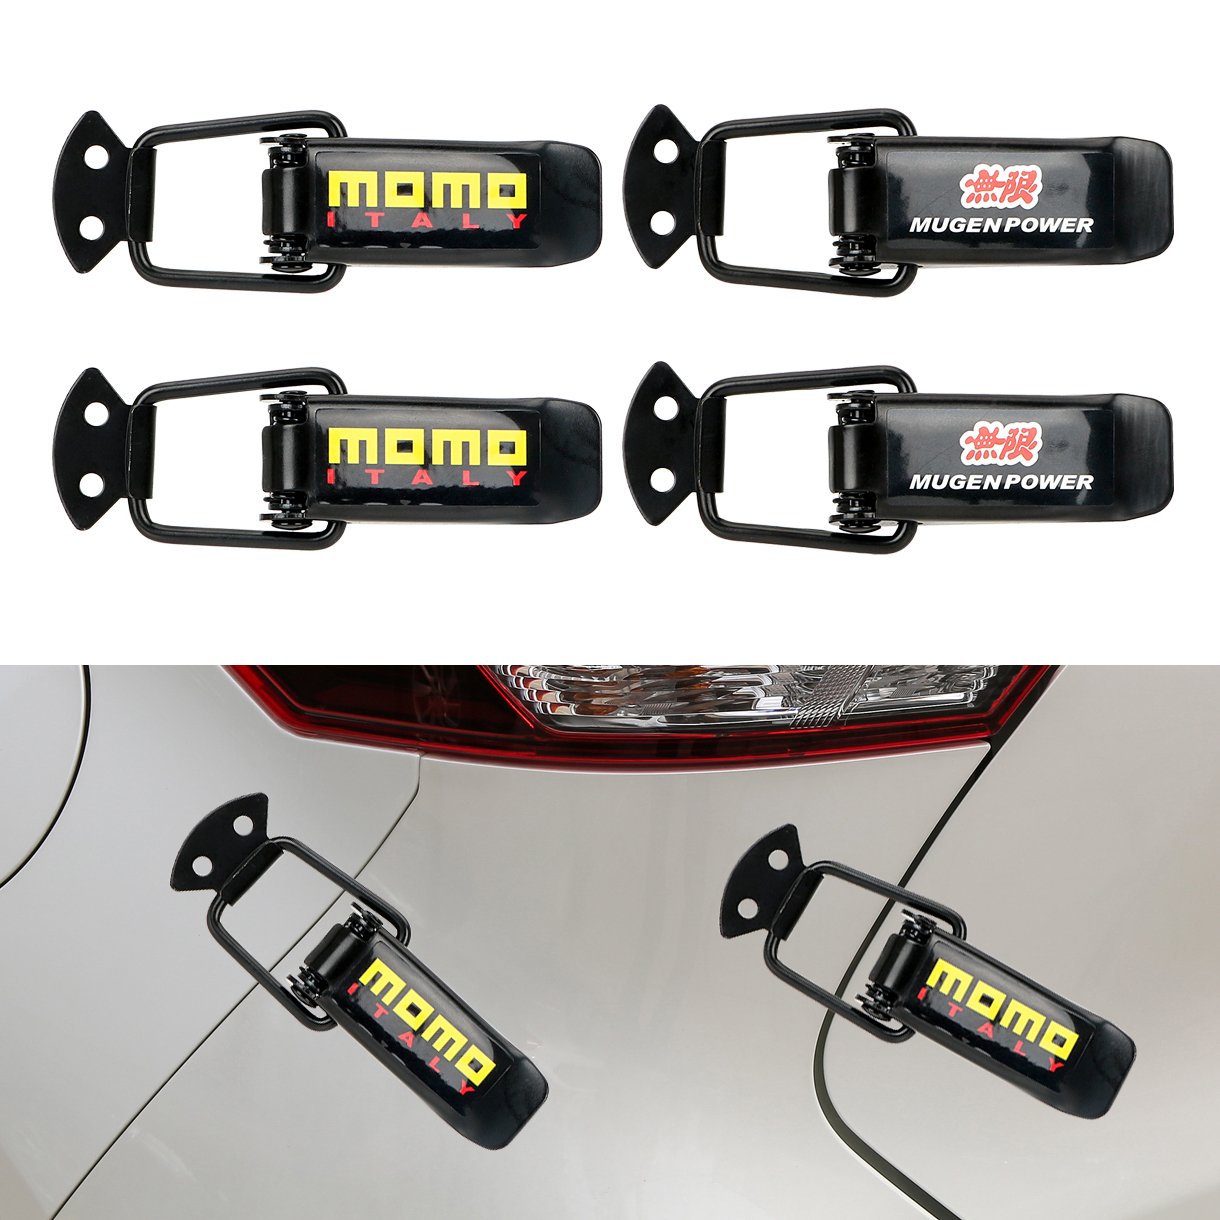 Car Bumper Security Hook Auto Accessories Lock Clip Kit for Racing Quick Release Fasteners Car Truck Hood Clip Hasp 2 Pieces